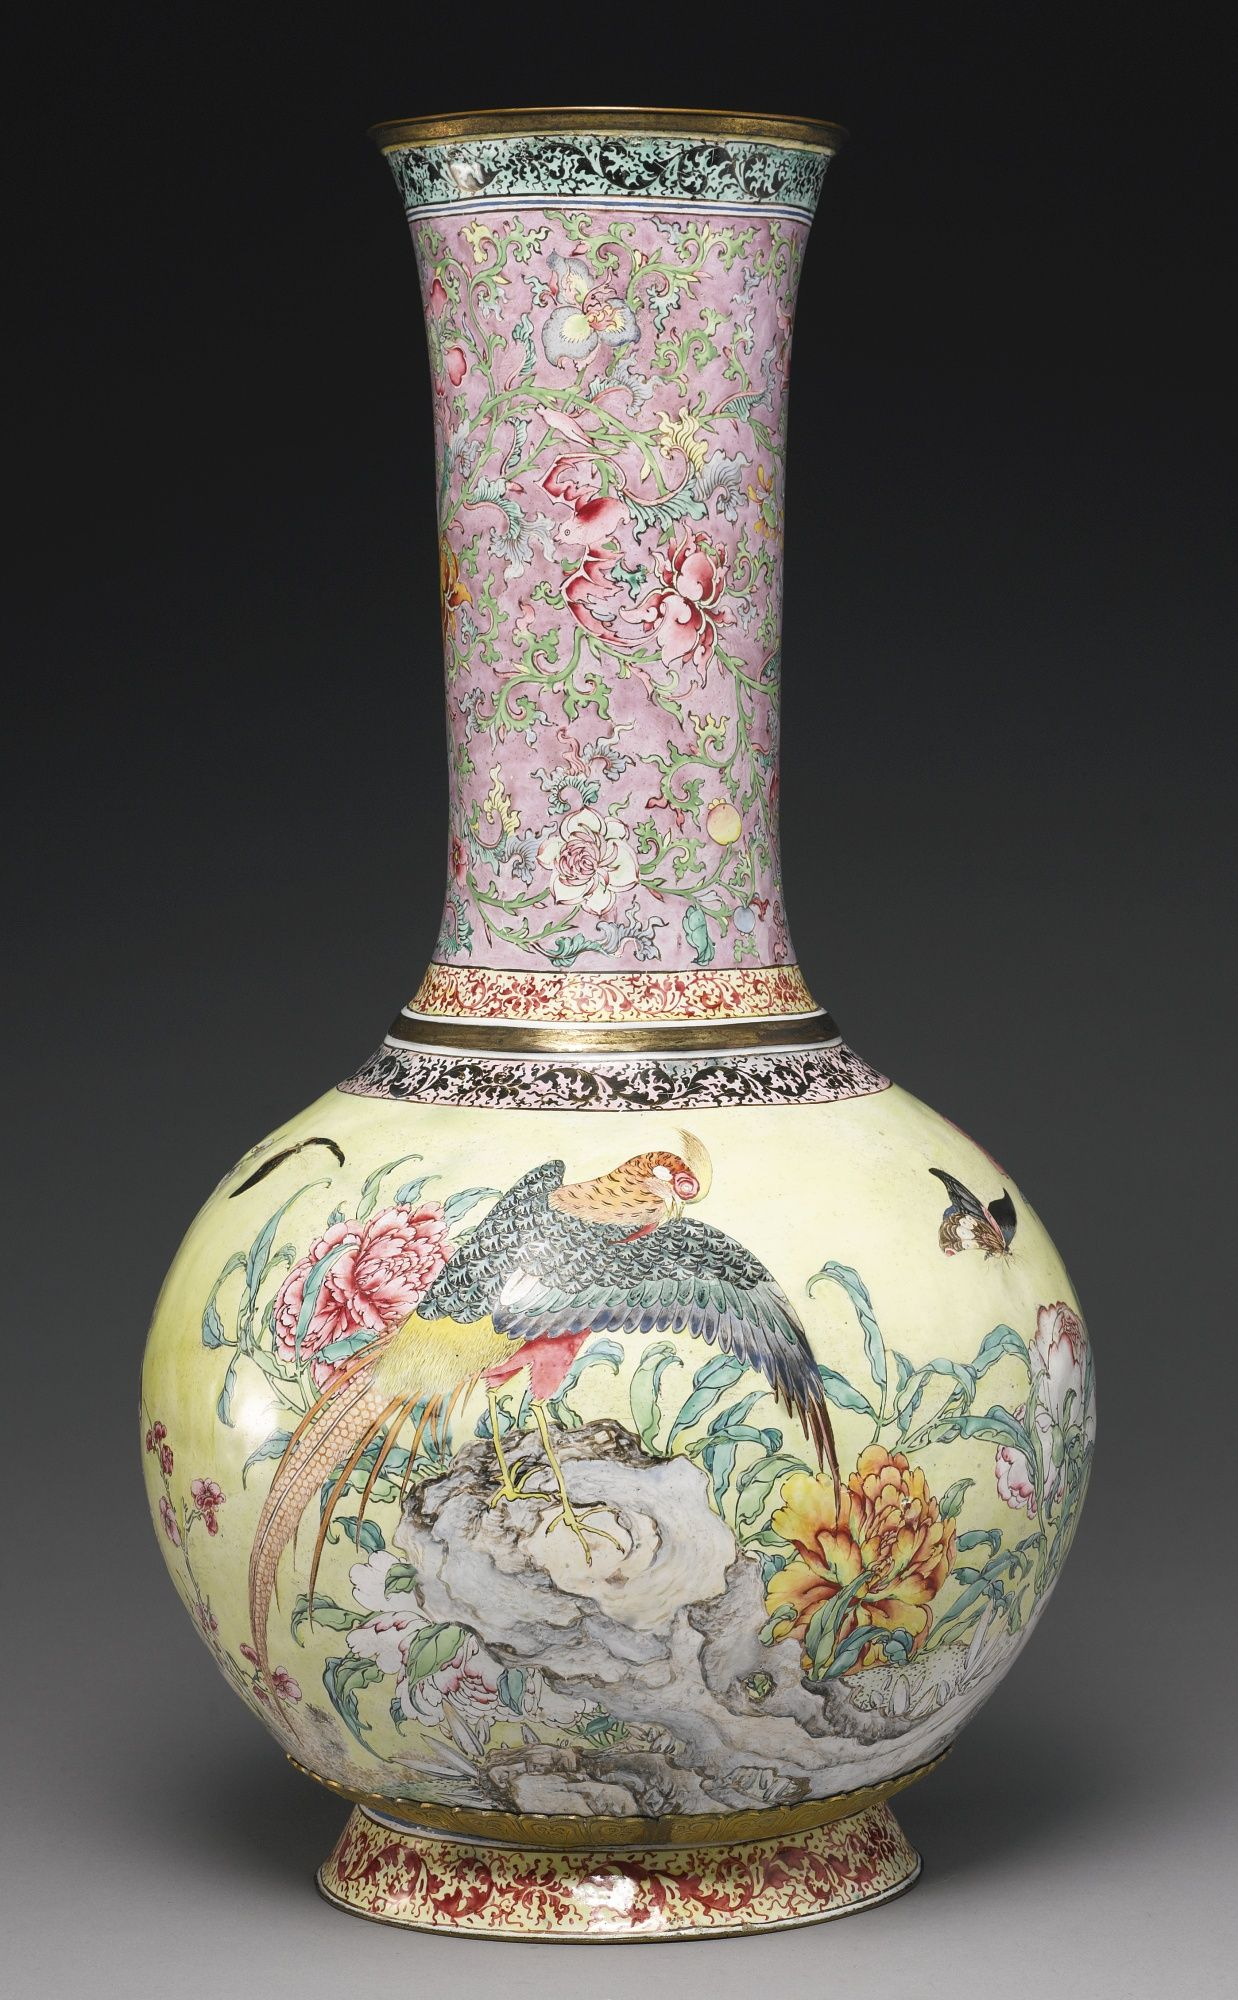 A rare and large canton enamel bottle vase qing dynasty qianlong a rare and large canton enamel bottle vase qing dynasty qianlong period reviewsmspy